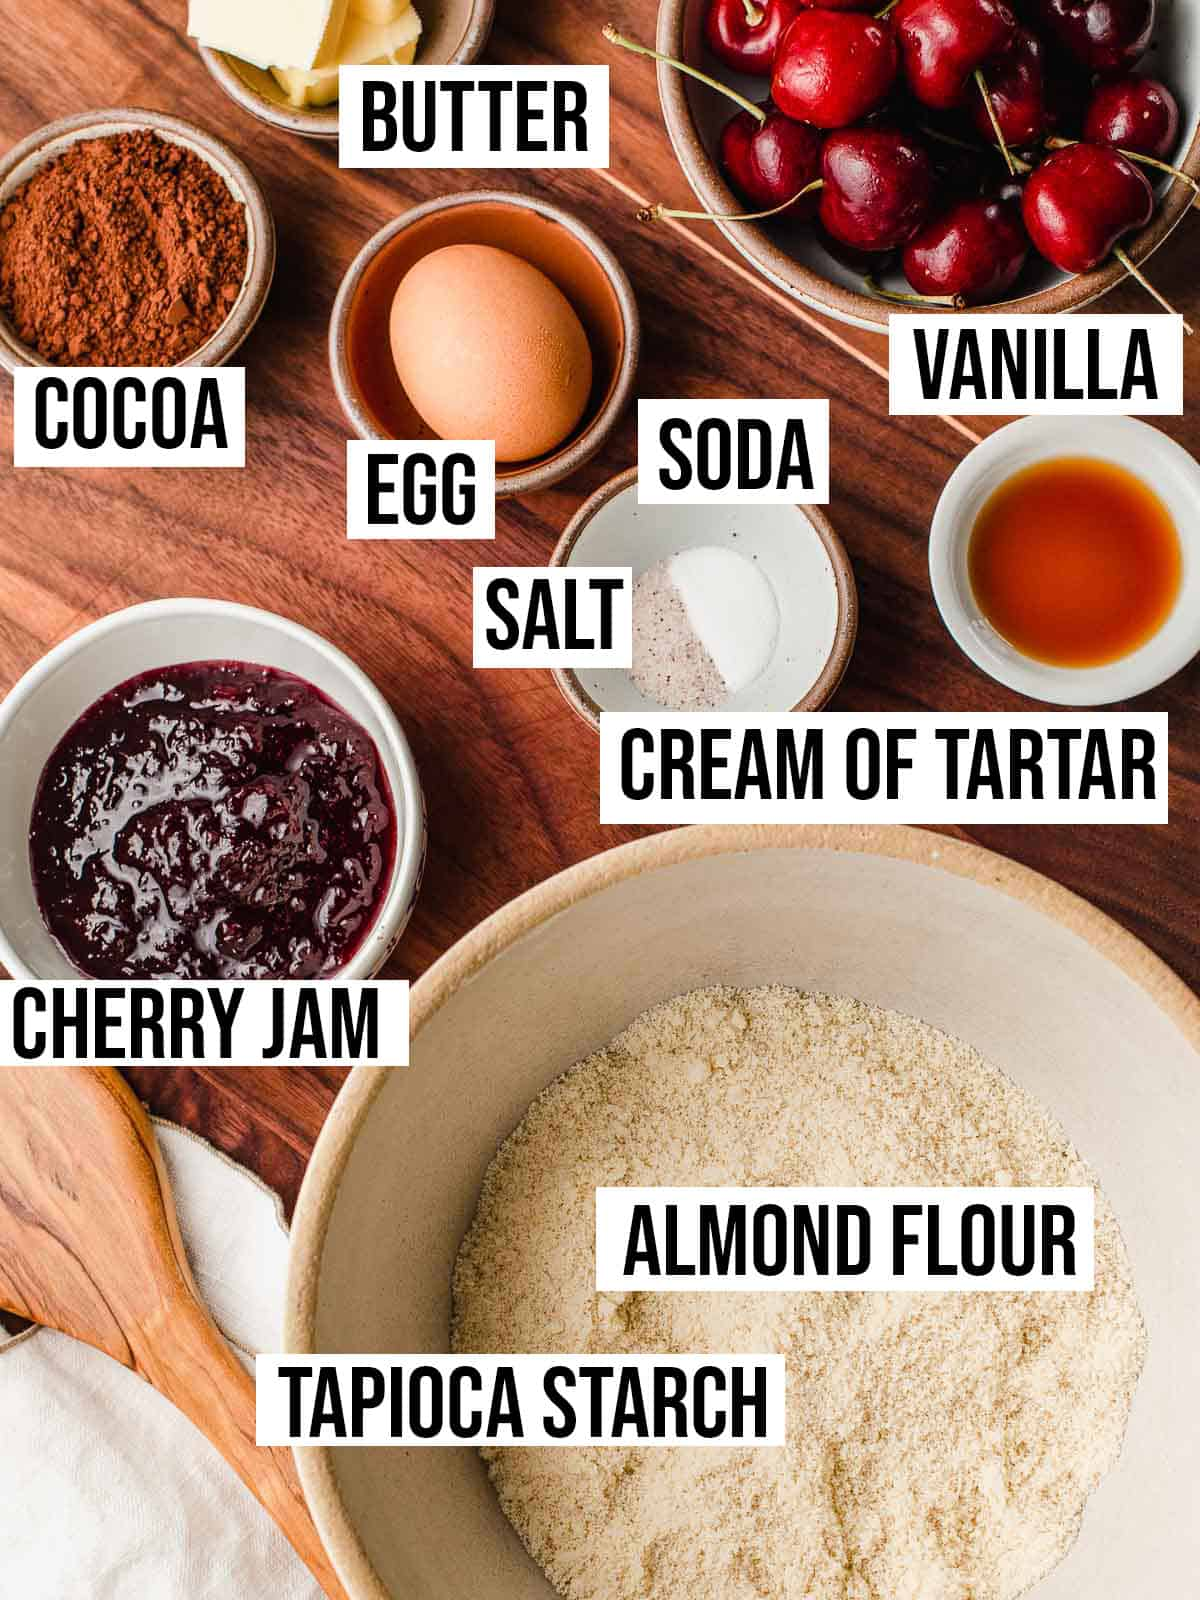 Ingredients on a table.